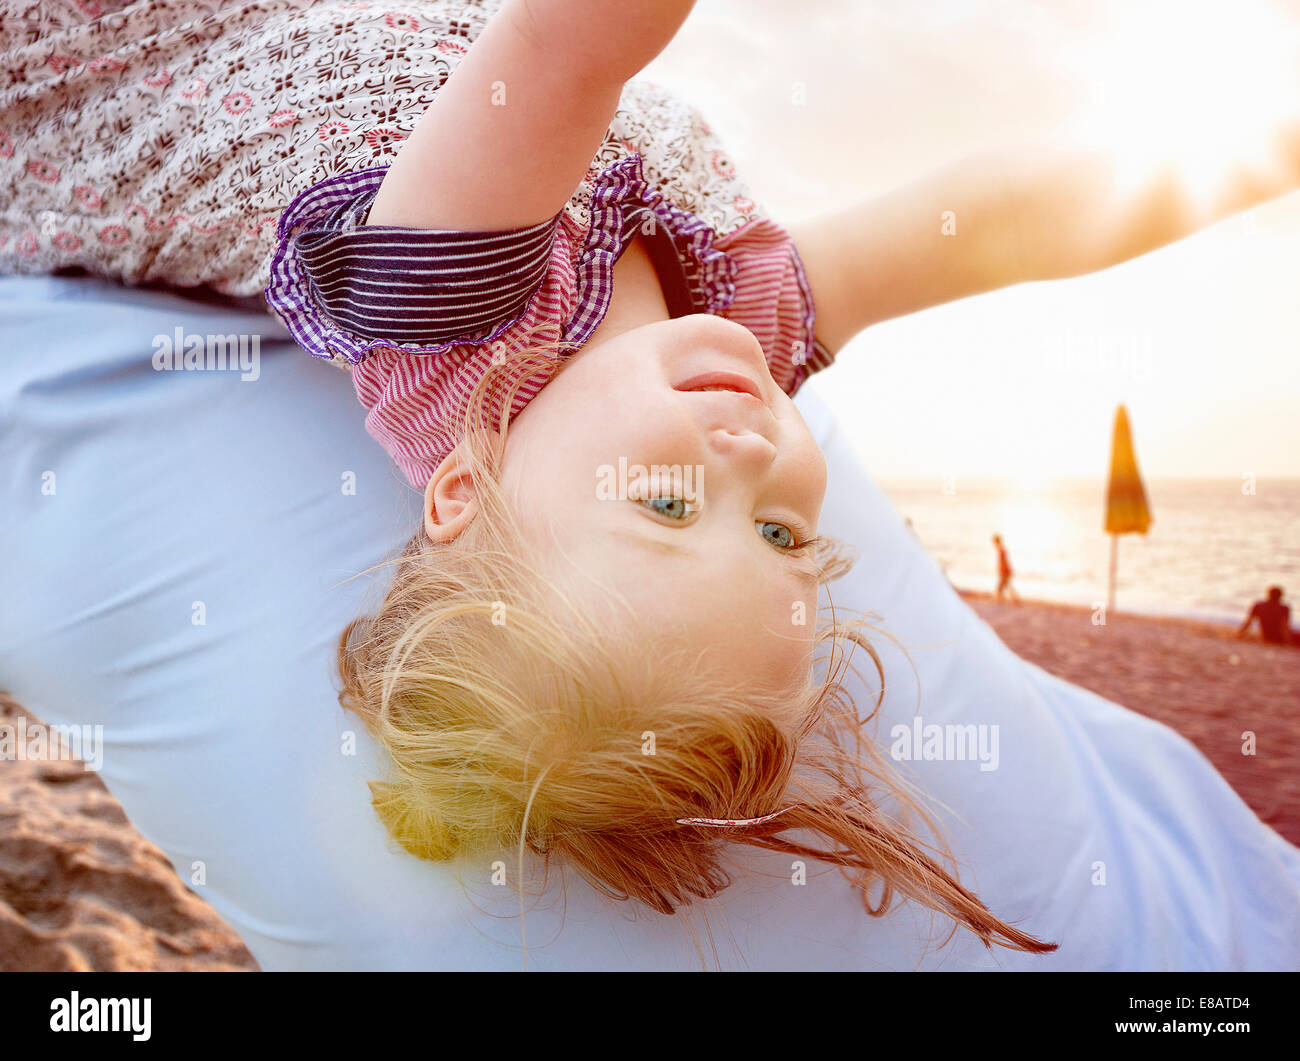 Person carrying young girl on back - Stock Image